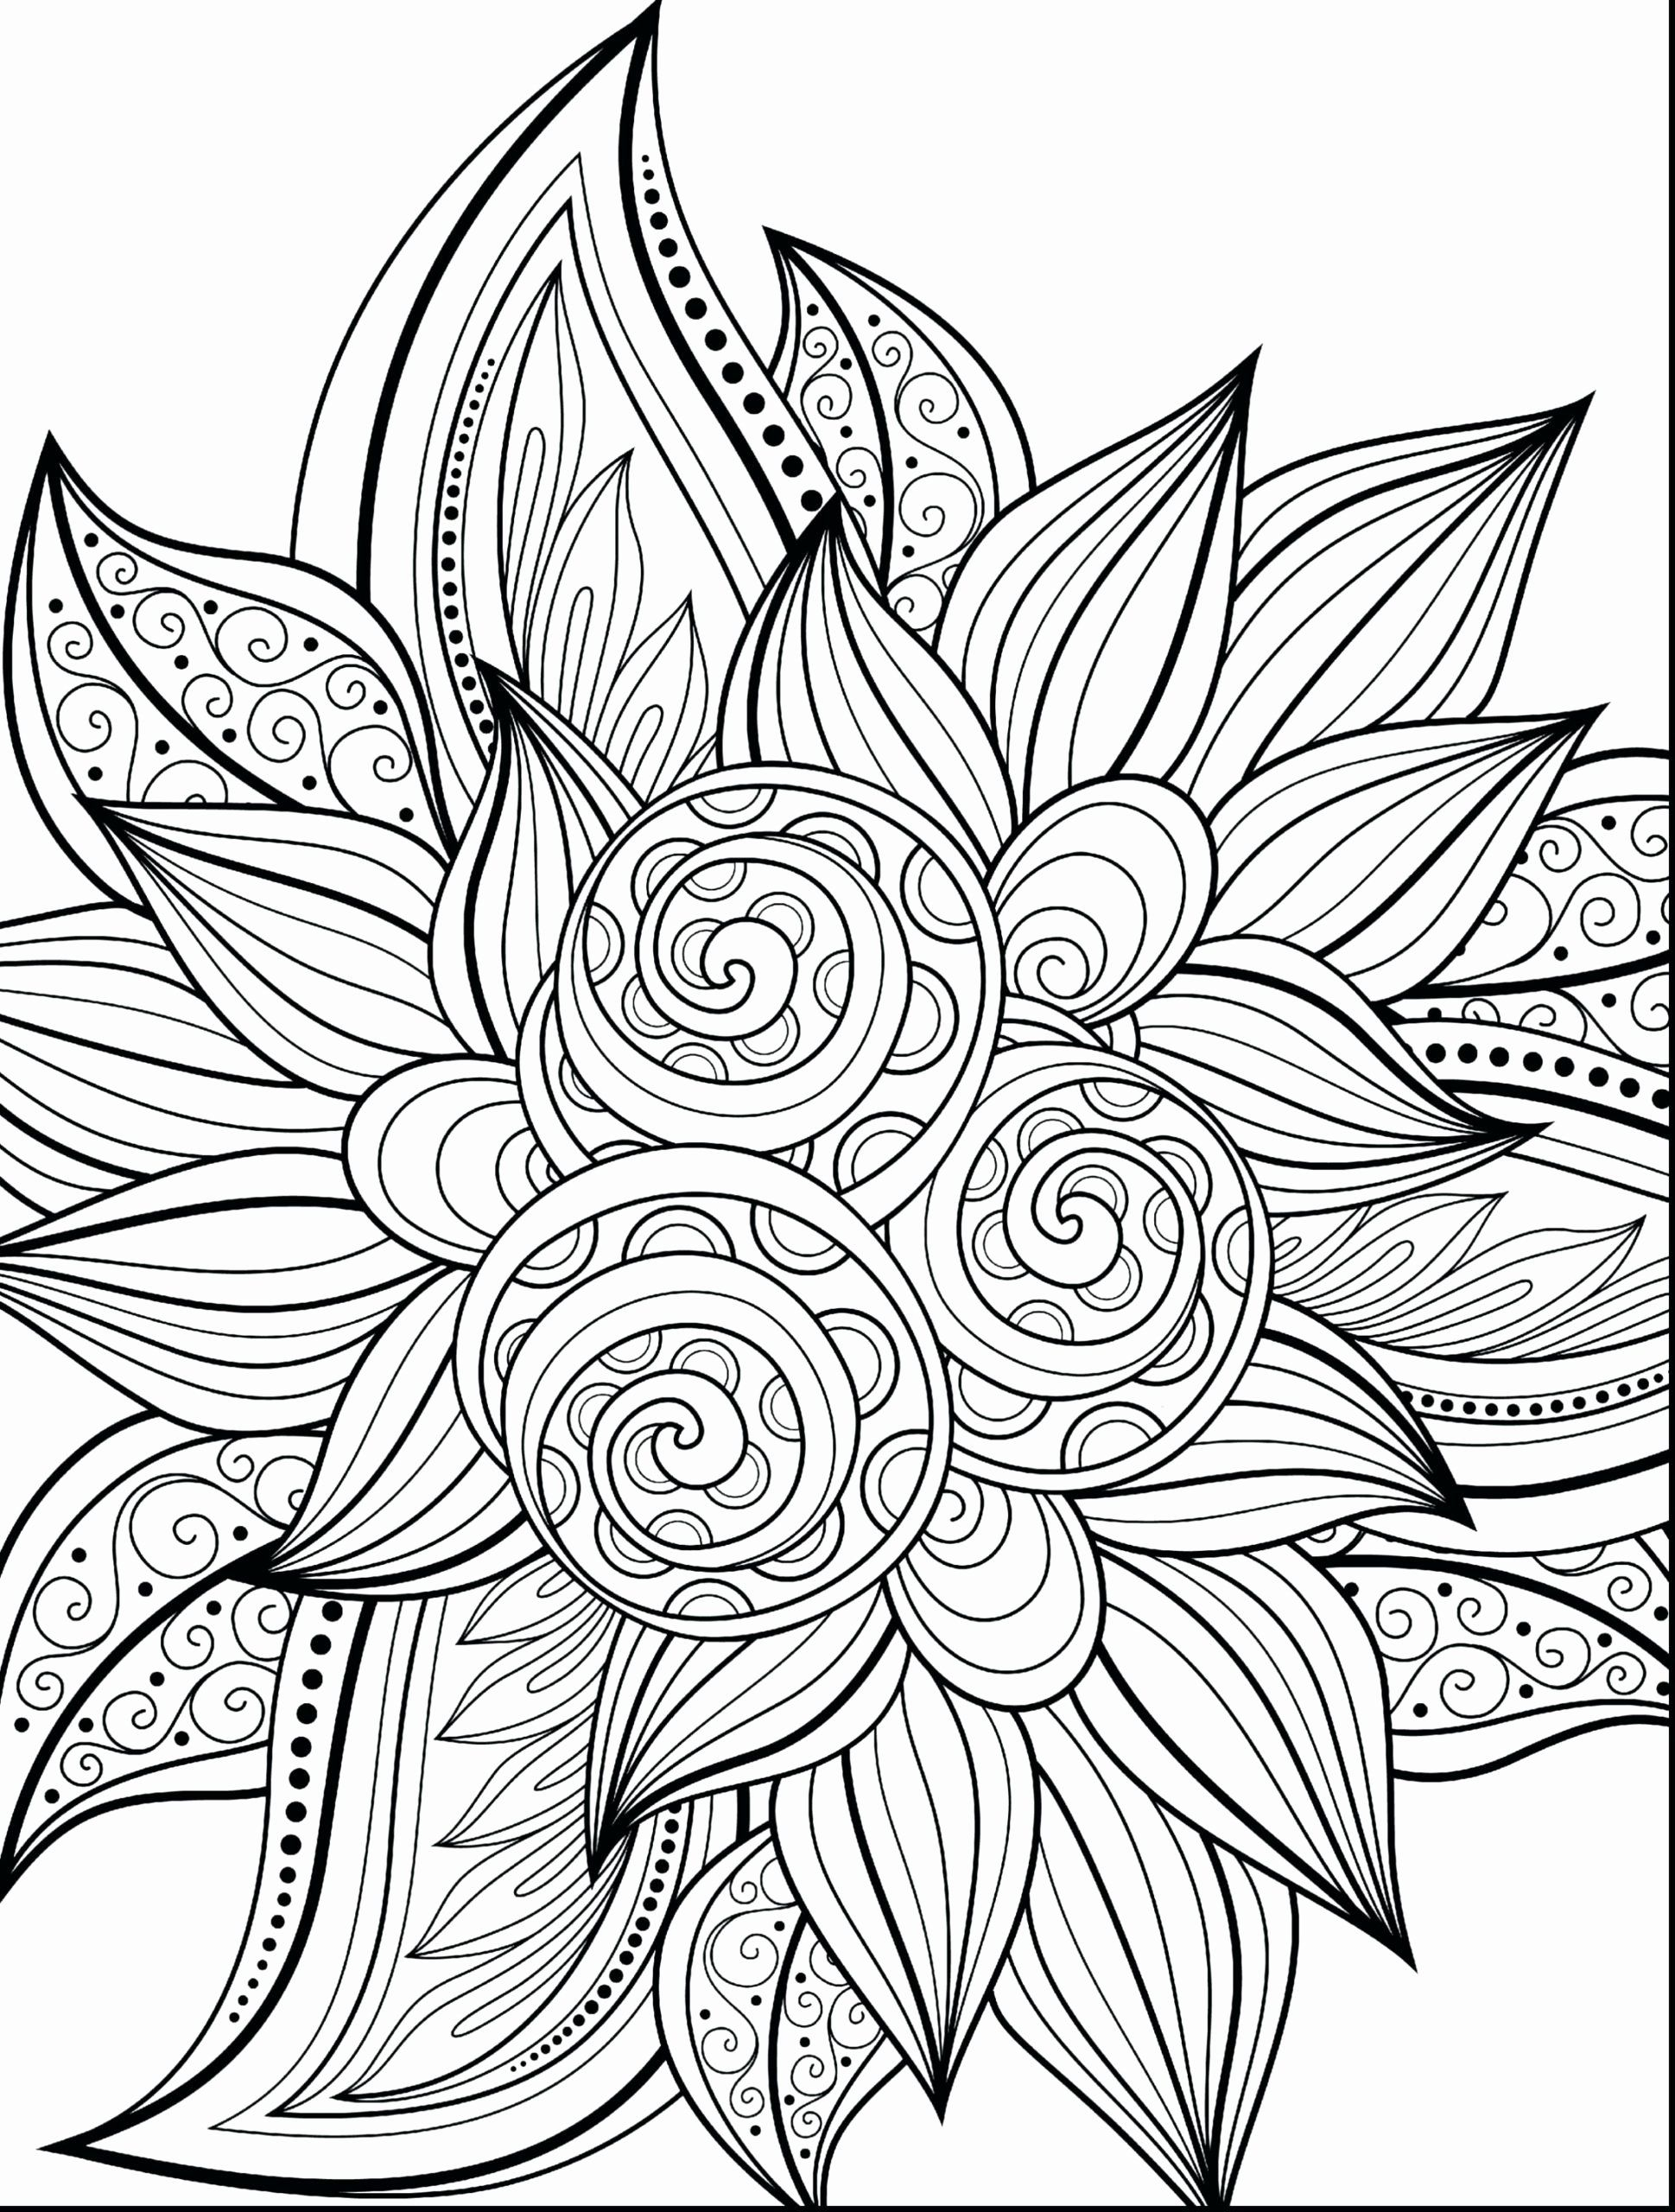 Pin On Coloring Pages Ideas For Adult Printable